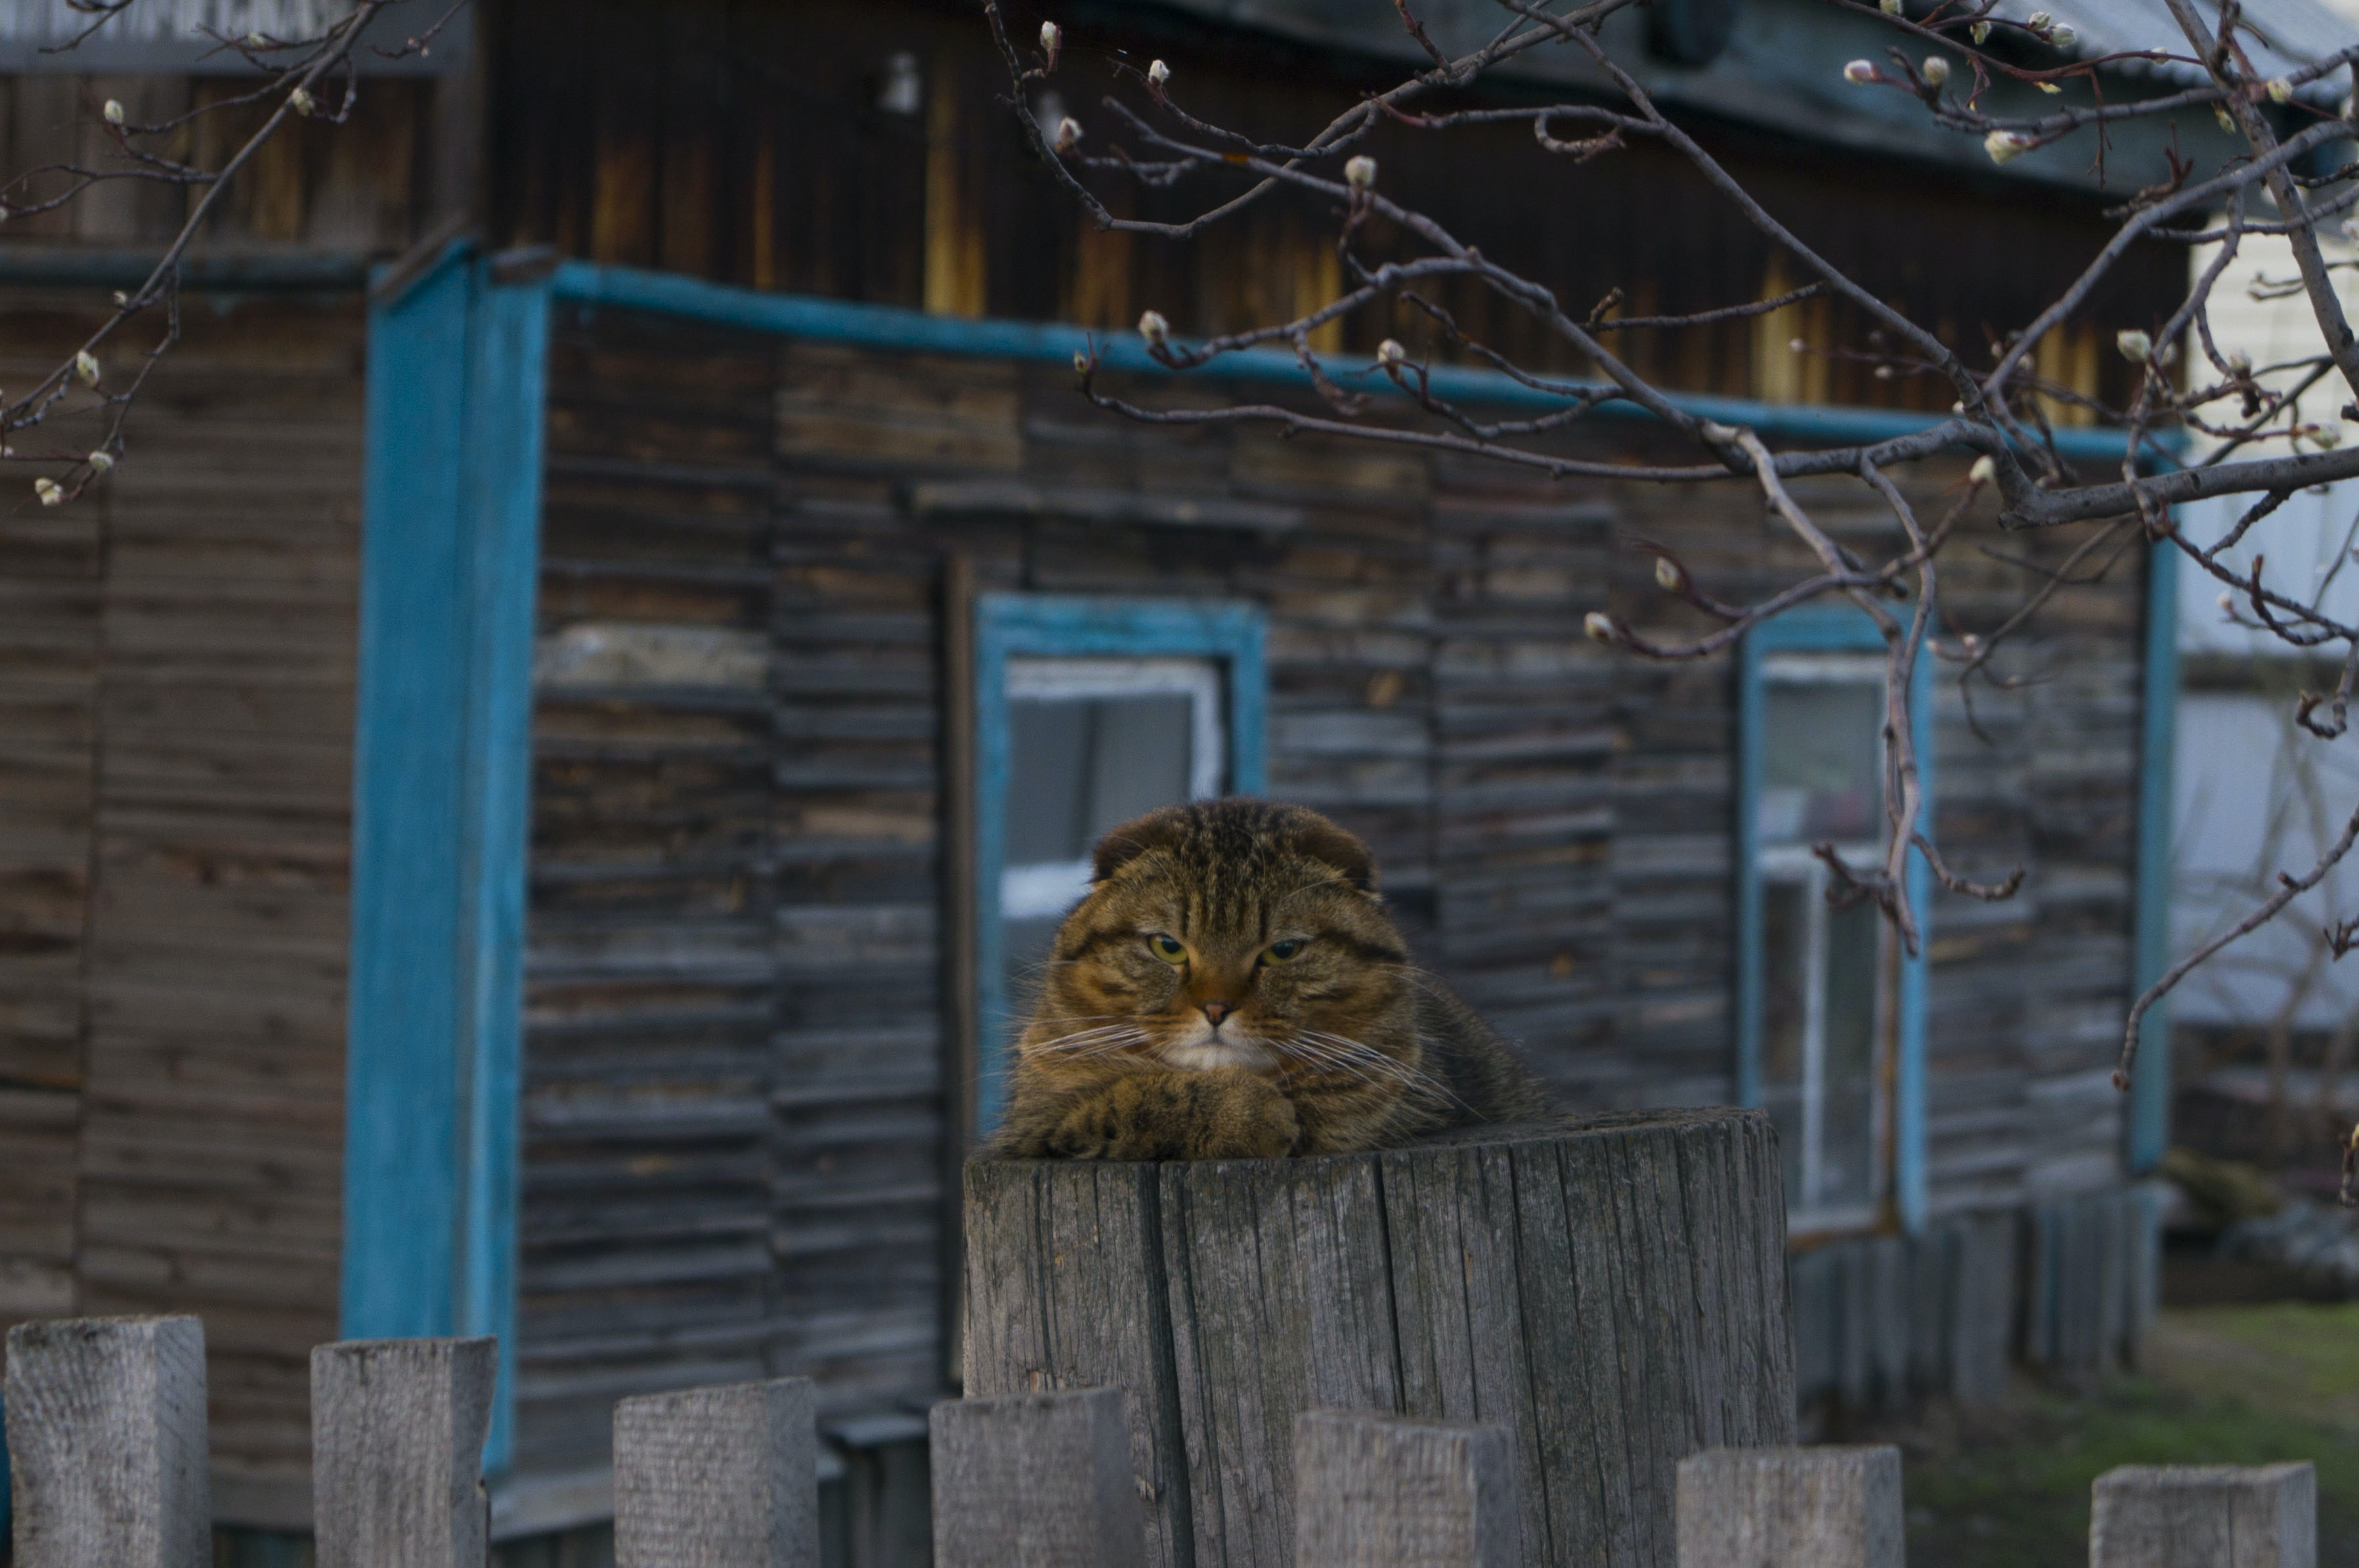 beige tabby cat on top of gray wooden post